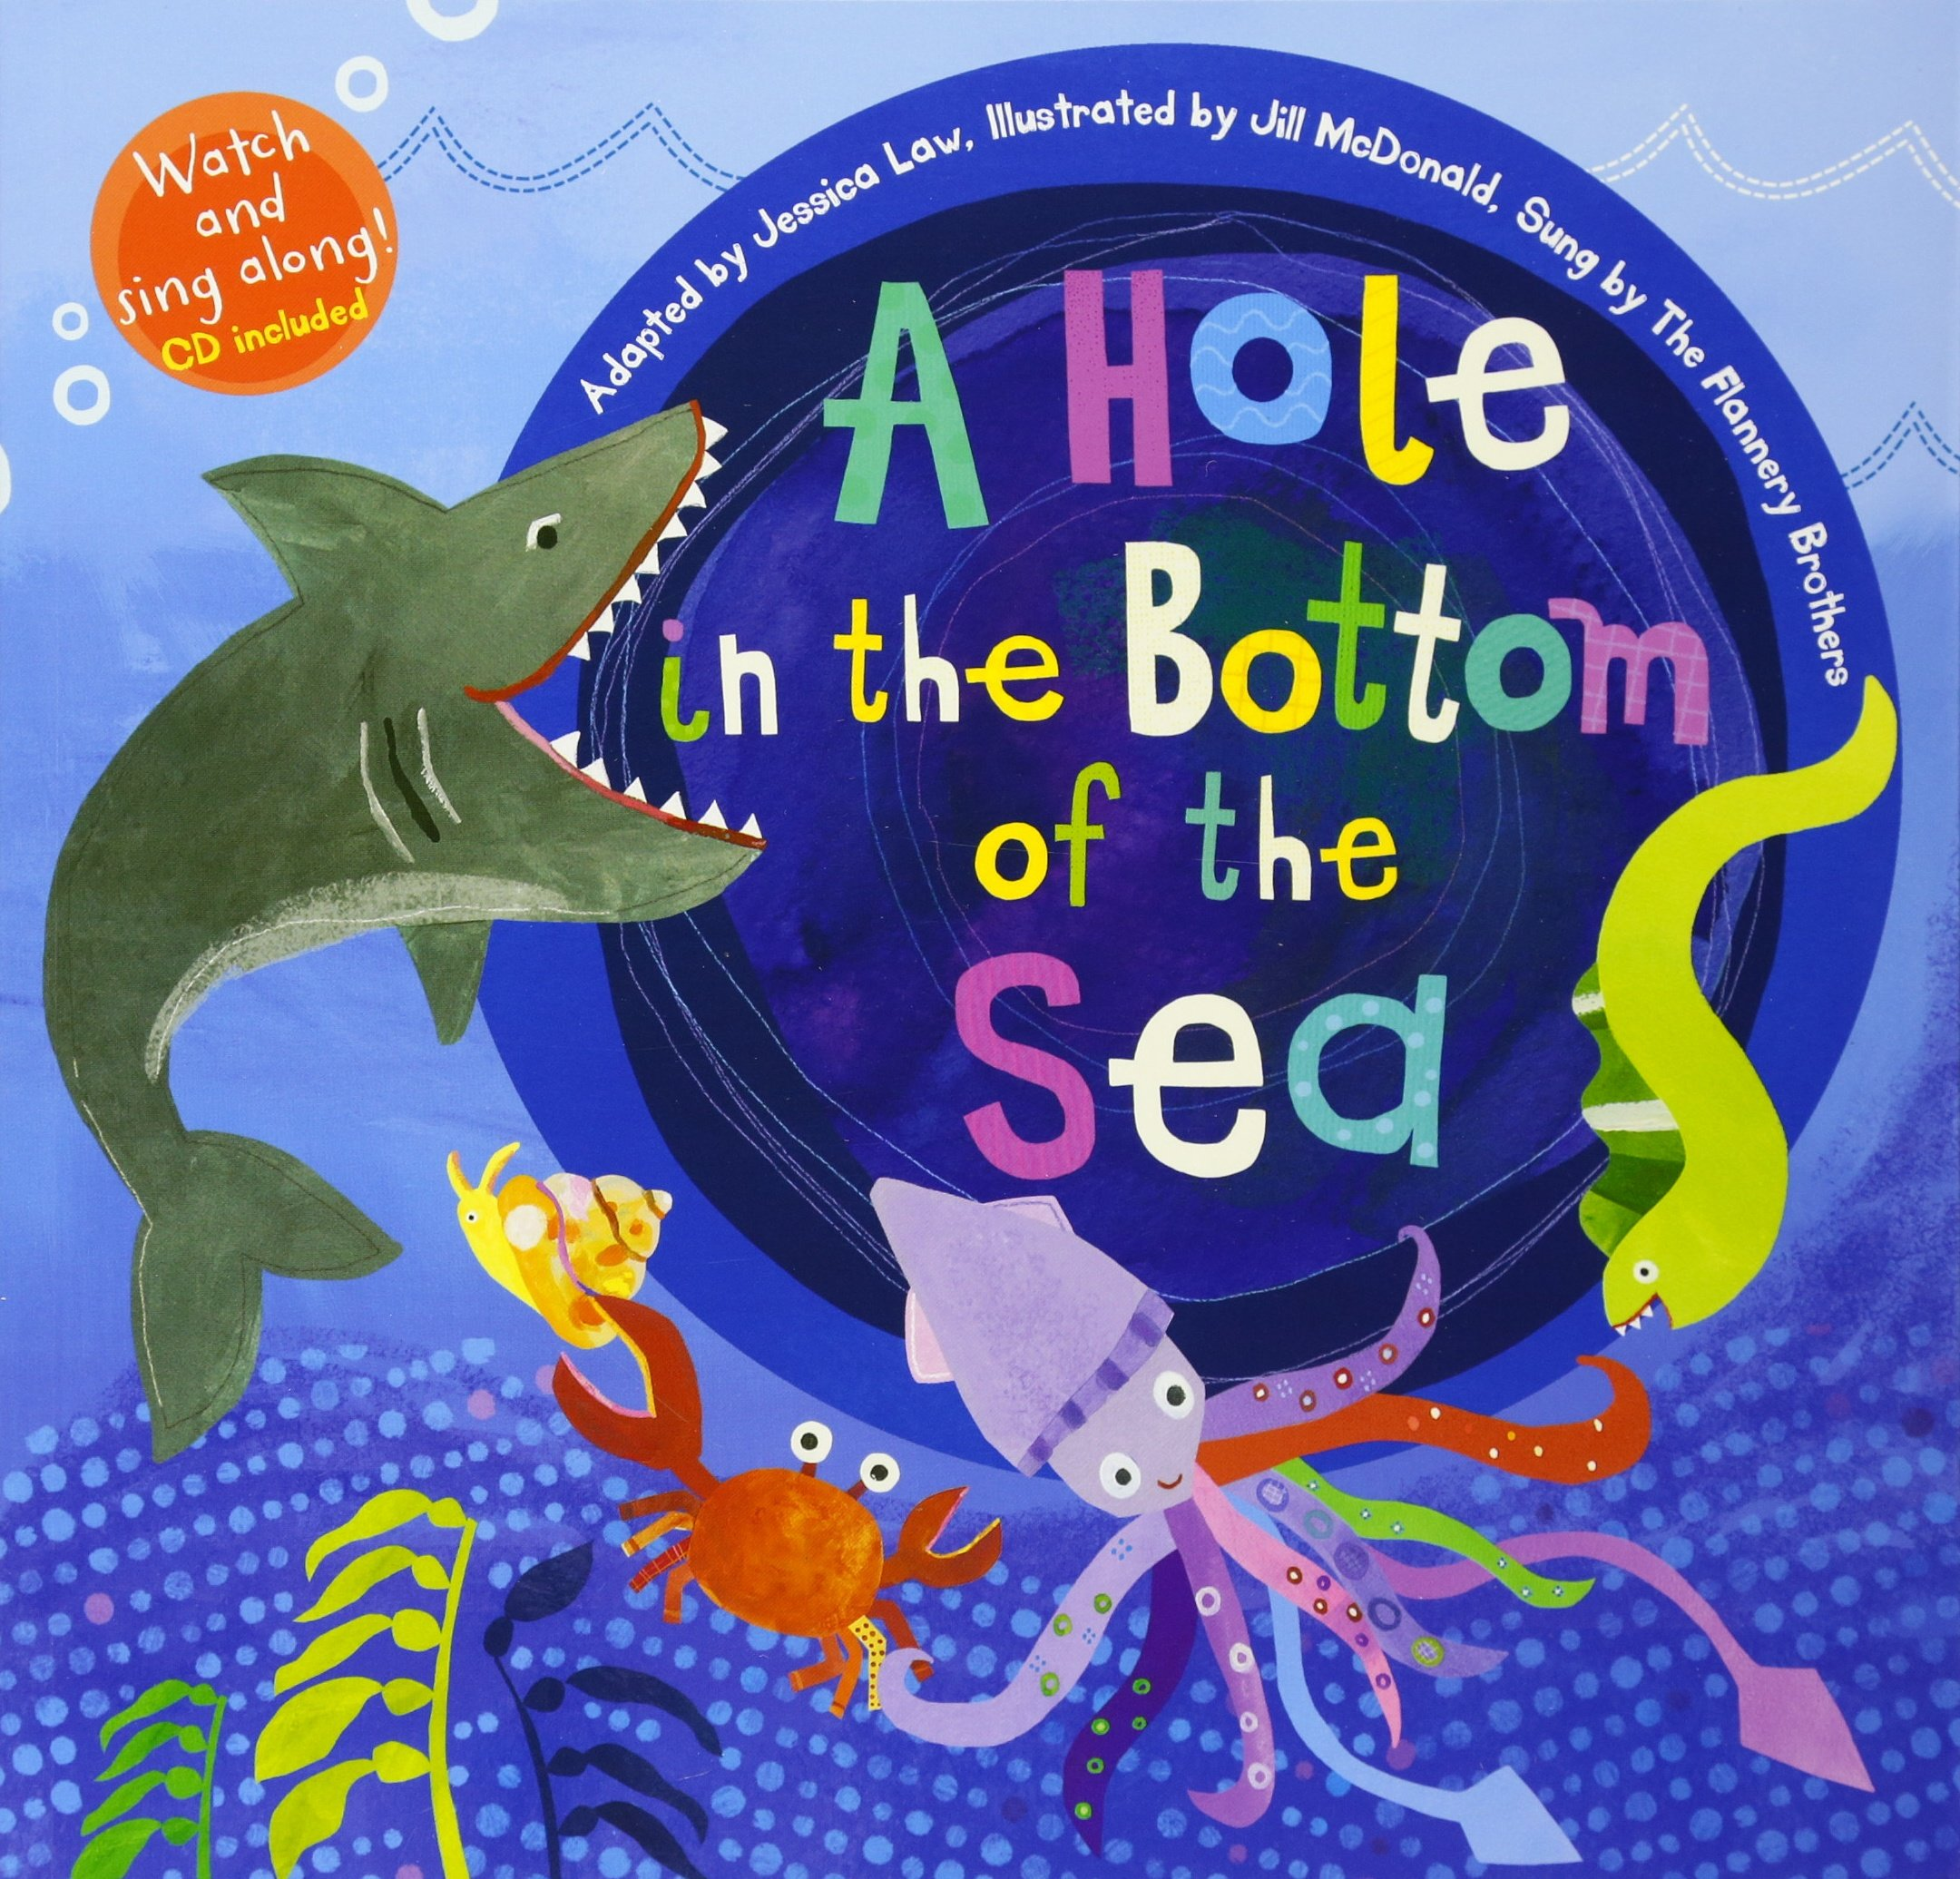 a-hole-in-the-bottom-of-the-sea